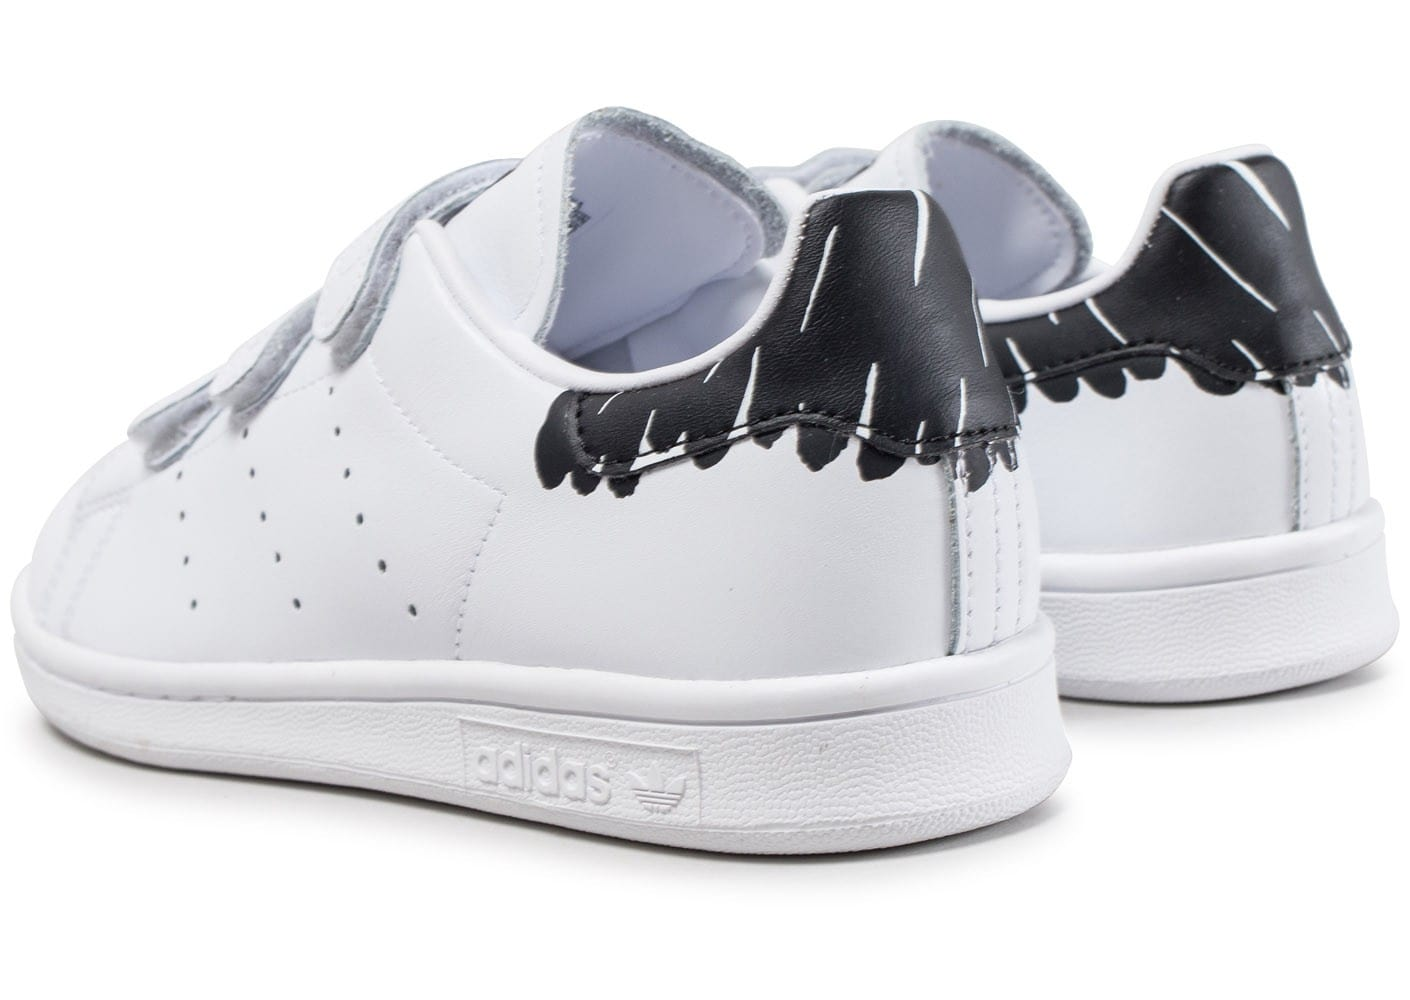 chaussure adidas blanche et vertebrates pictures and information